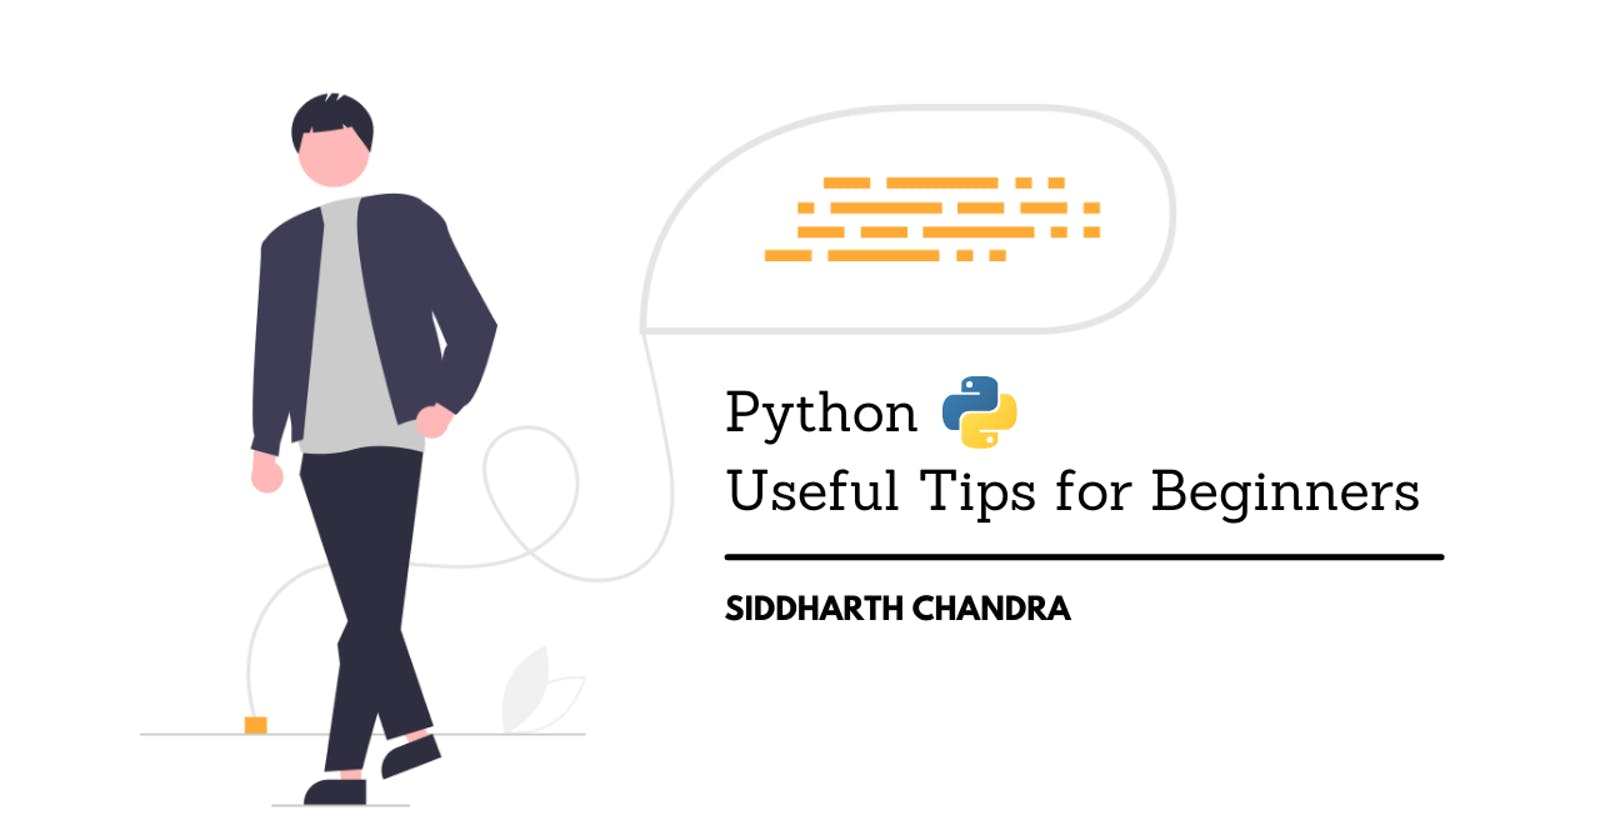 Python - Useful Tips for Beginners